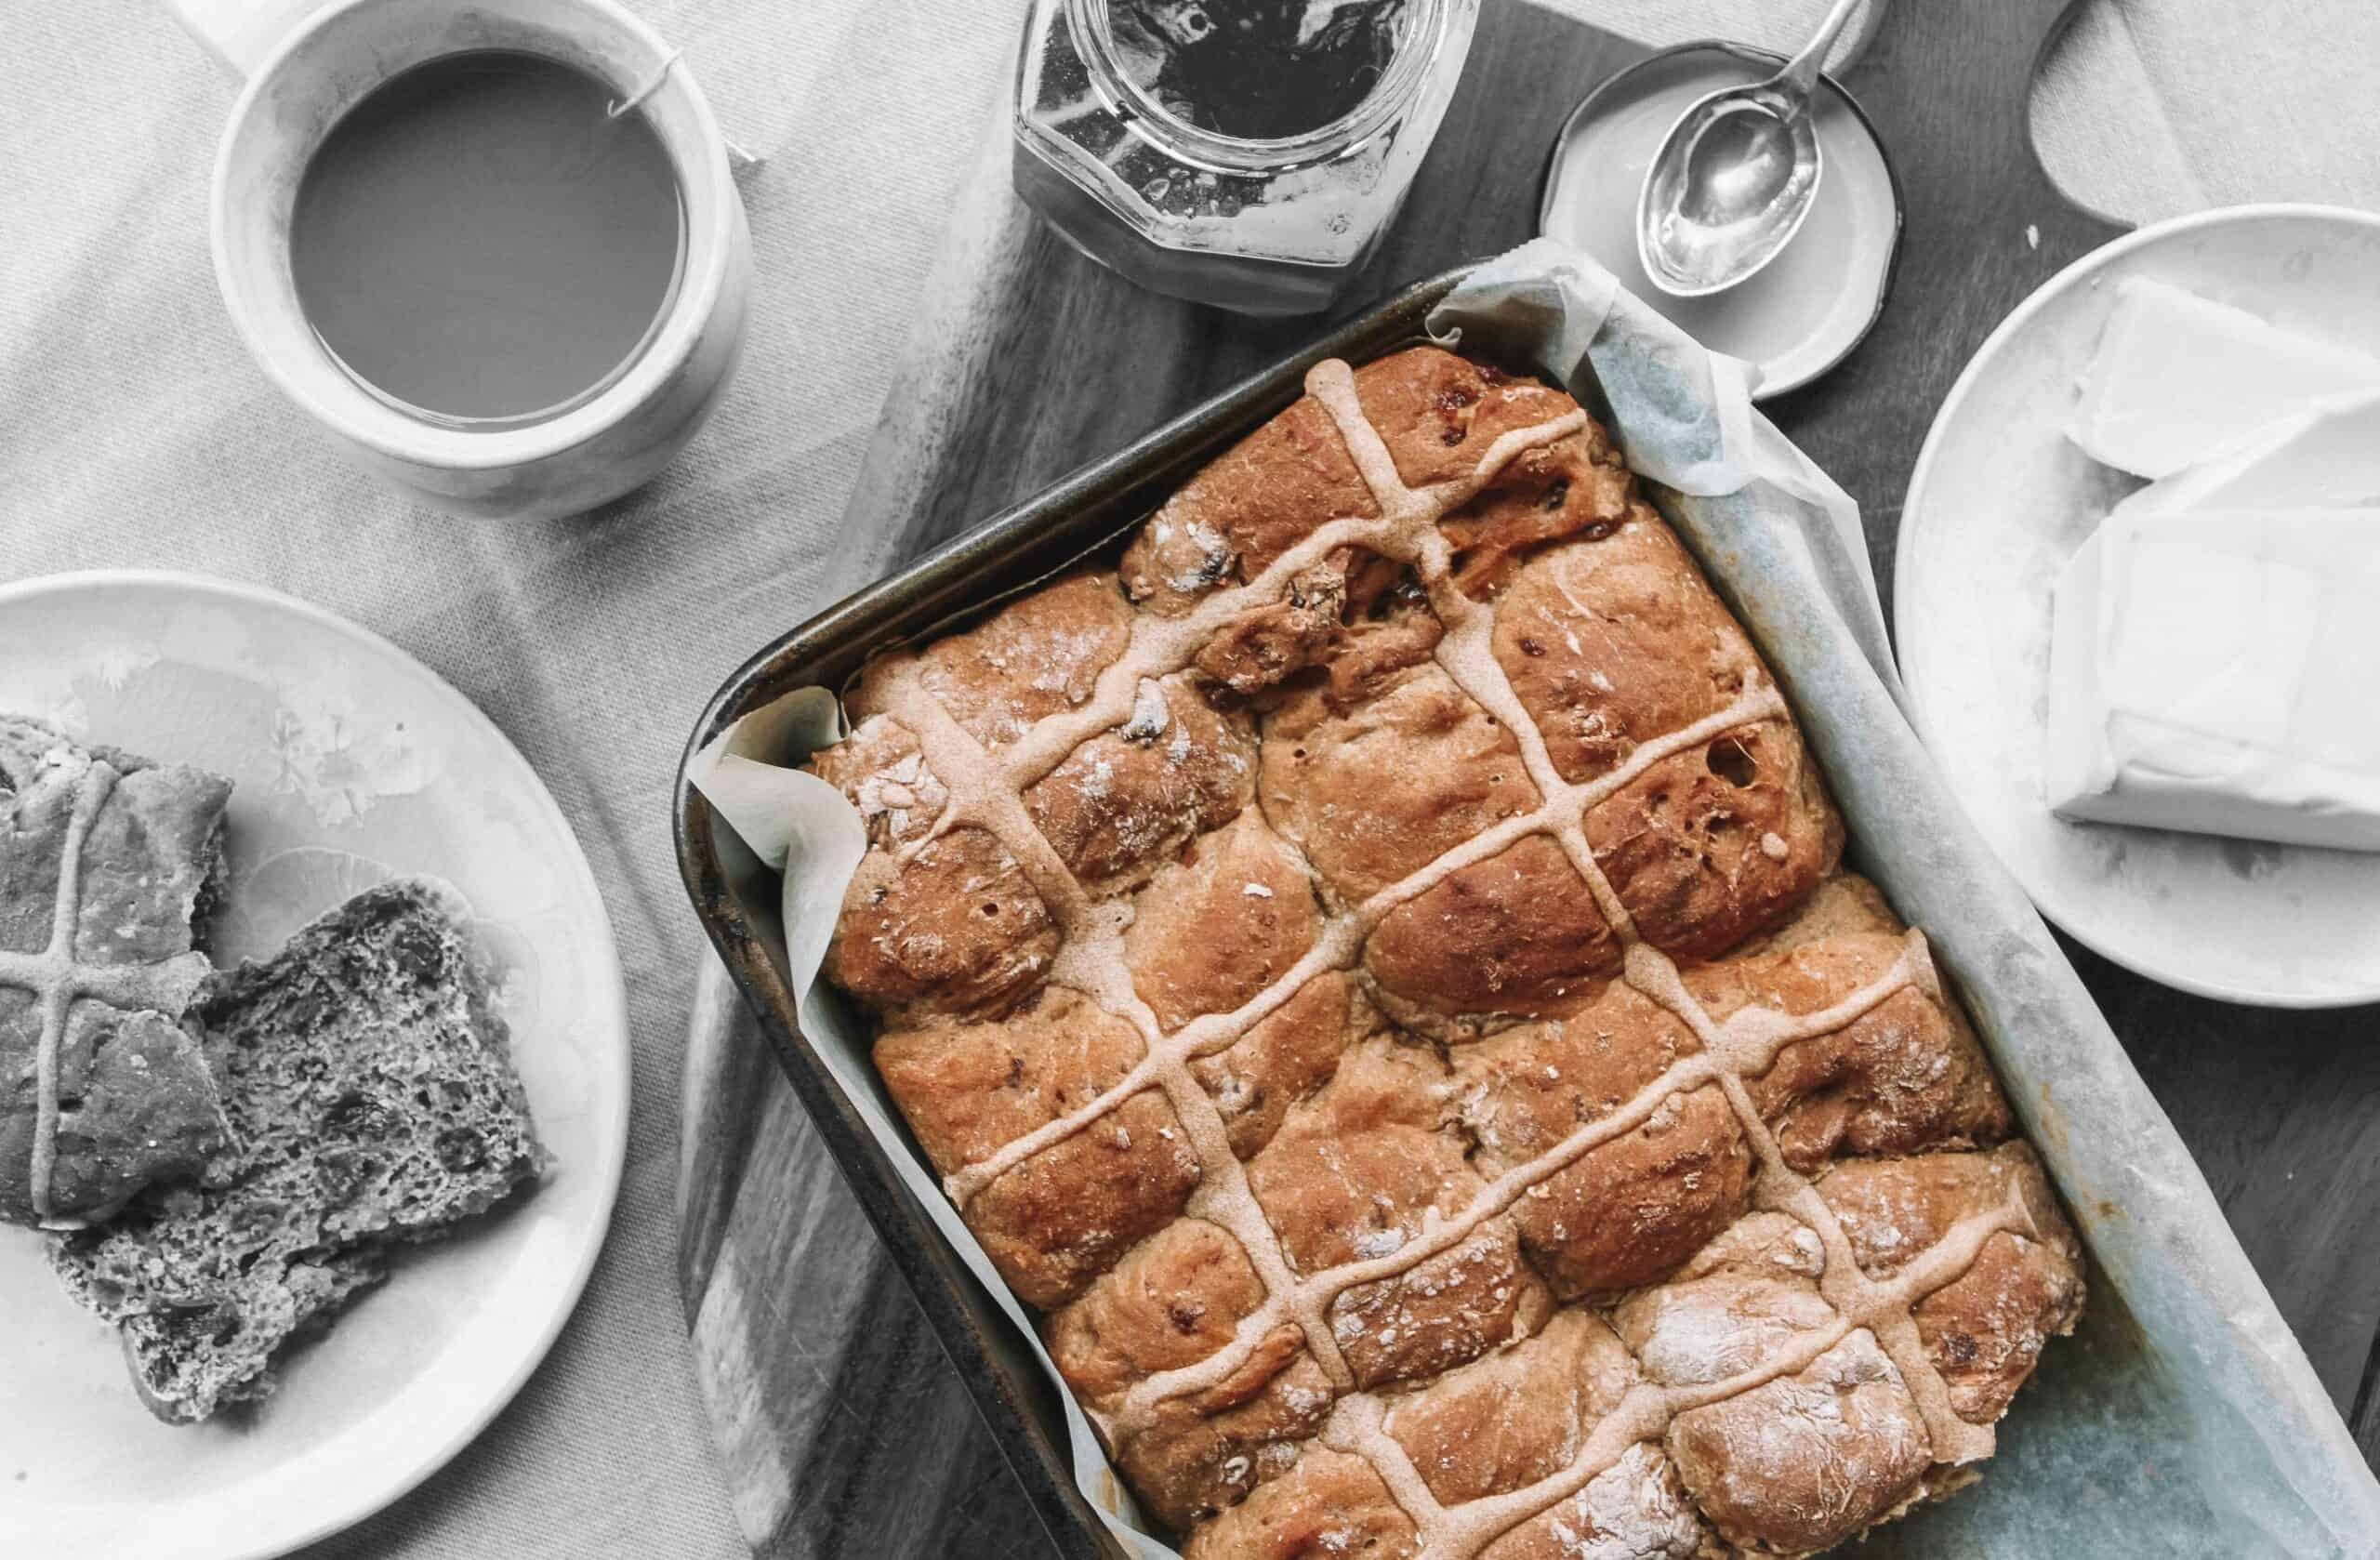 Discover an Easter favourite with our gut-friendly hot cross buns